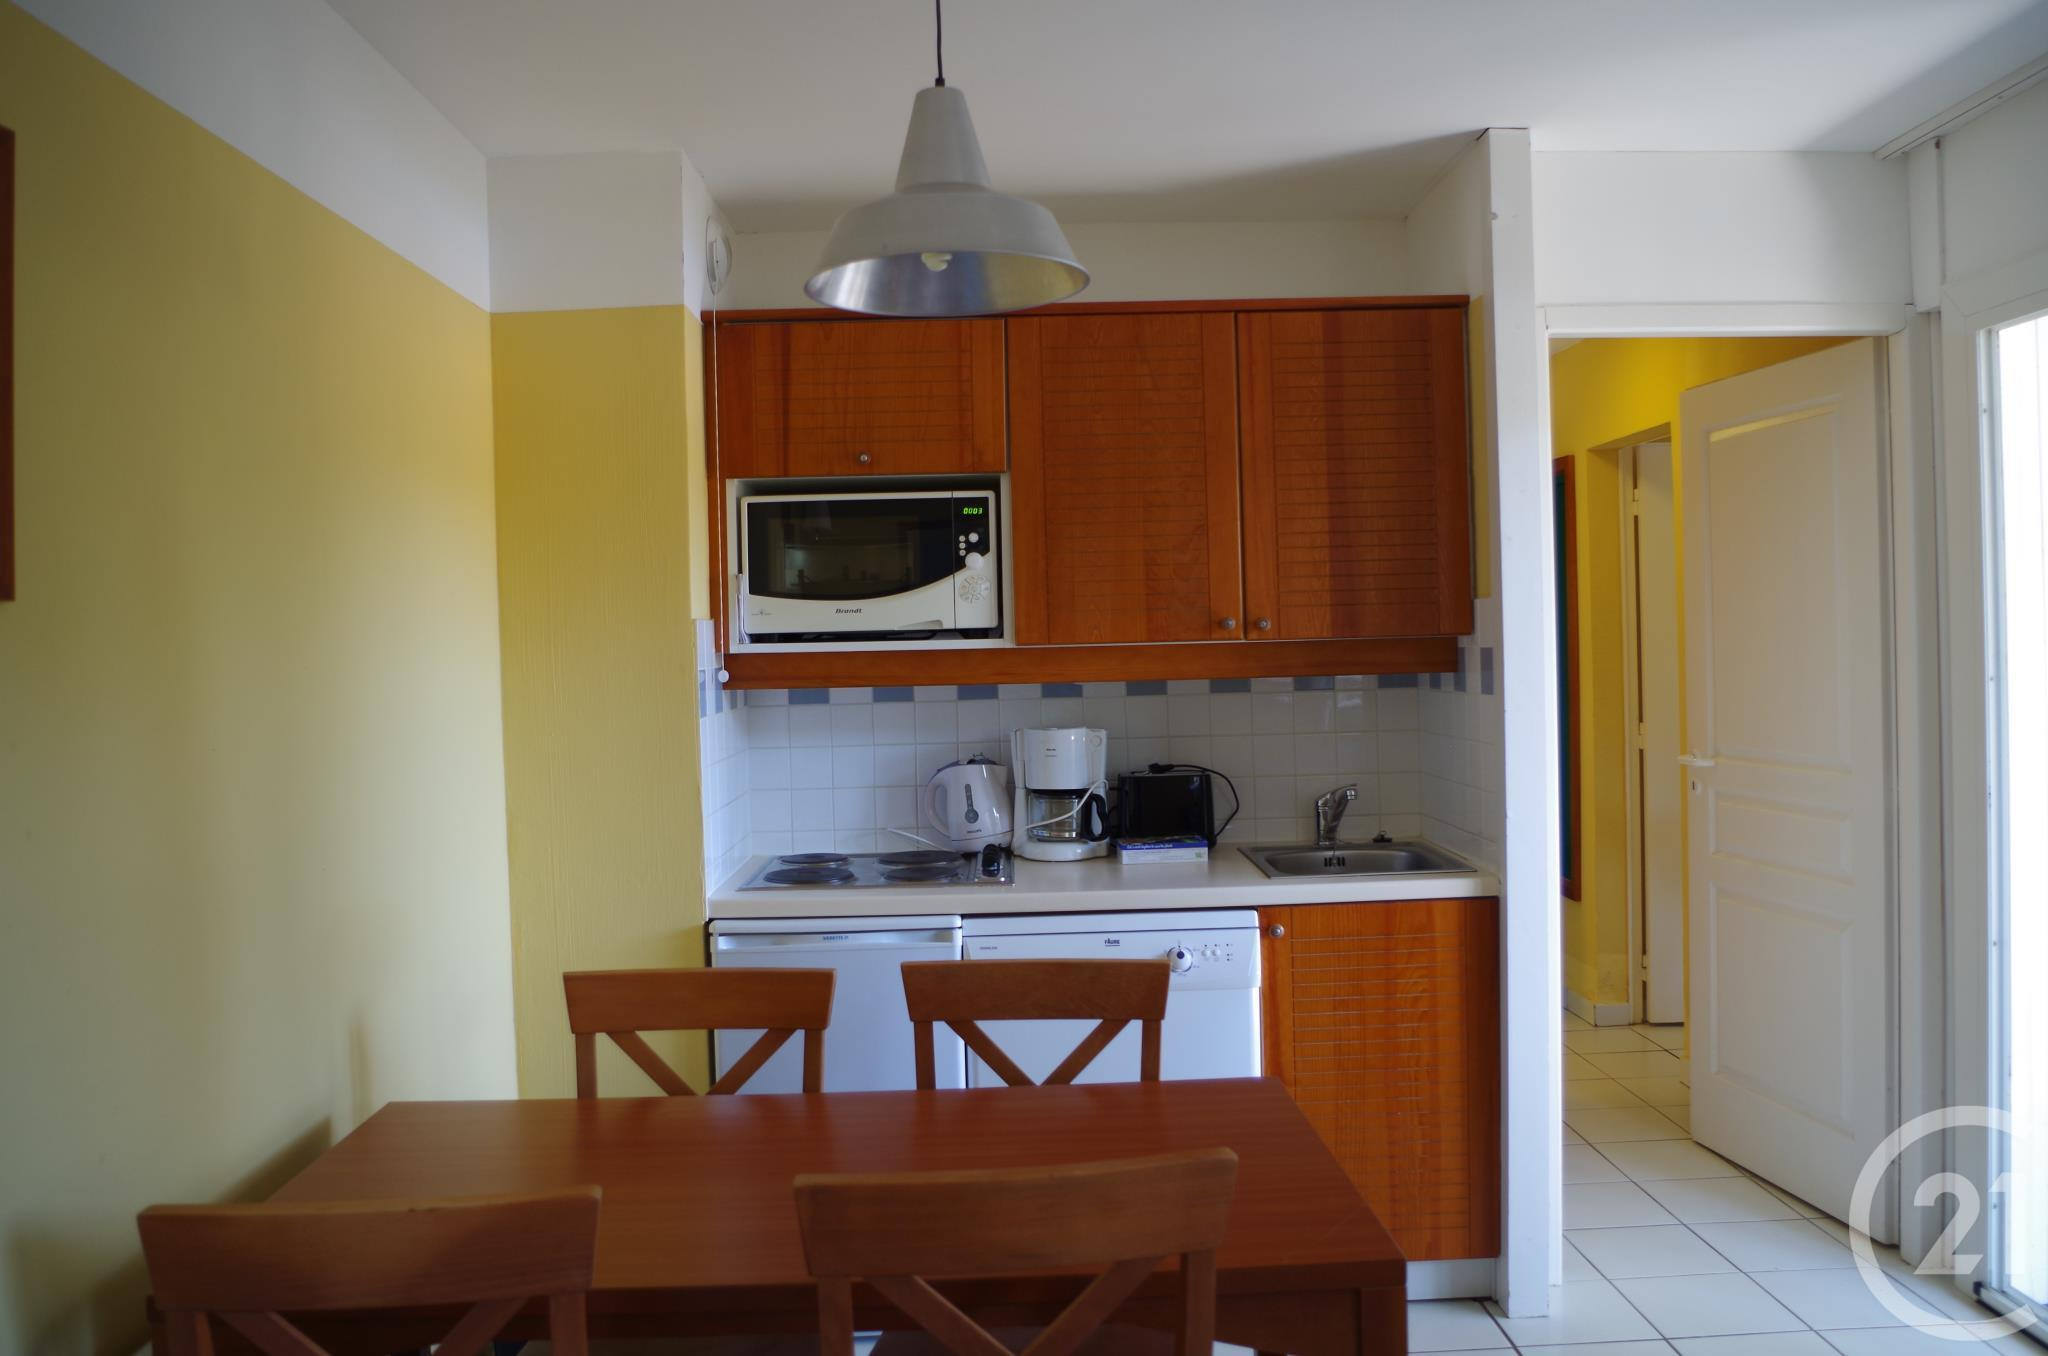 Appartement f2 2 pi ces vendre carcans 33121 ref for Appartement f2